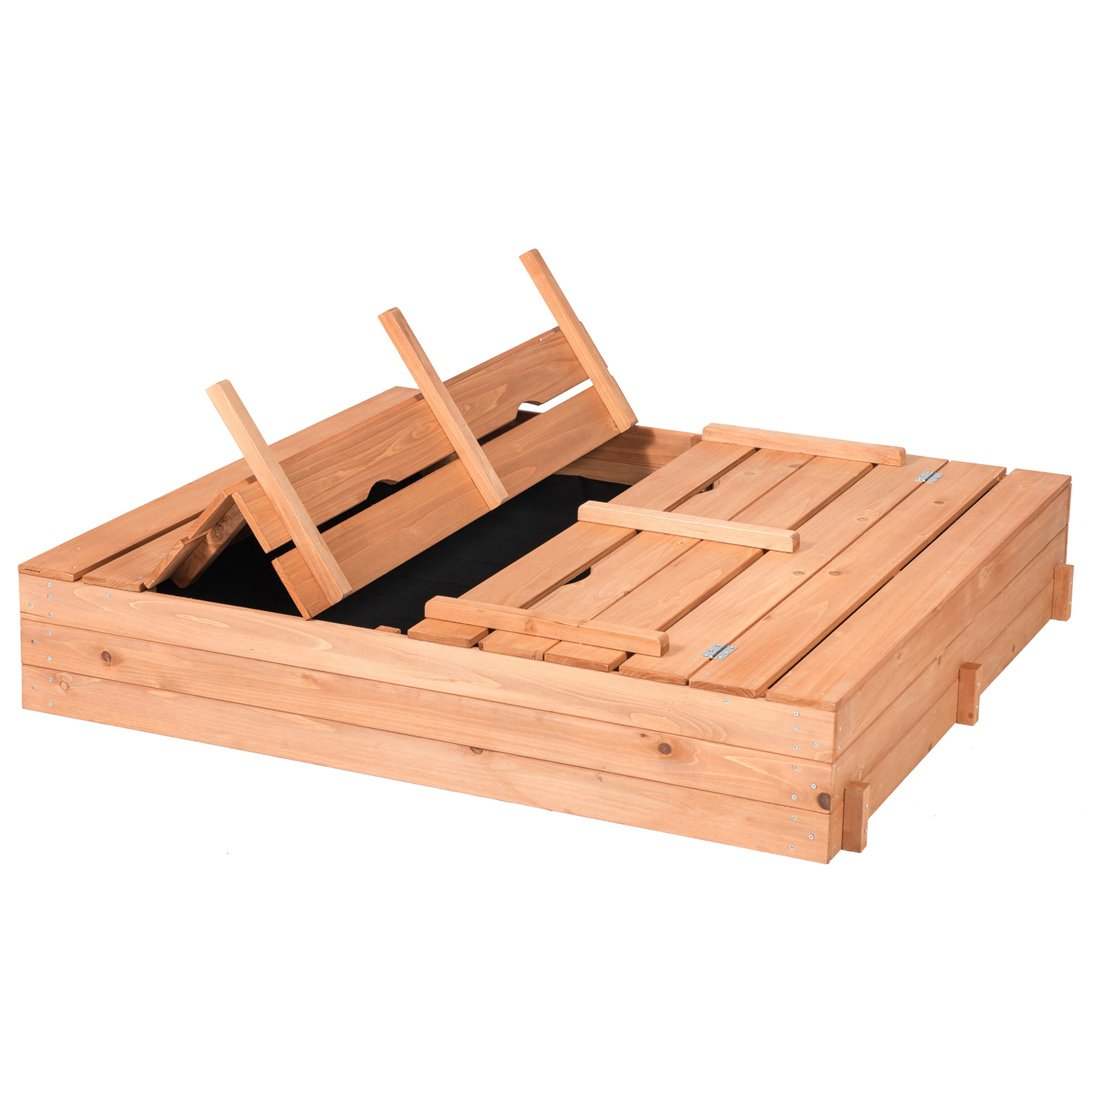 Good Life Outdoor Sandbox with Covered and Bench Seats Kids Play Sand for Sand Box Toys Wood Natural Color 47'' x 47'' Size by Good Life USA (Image #3)